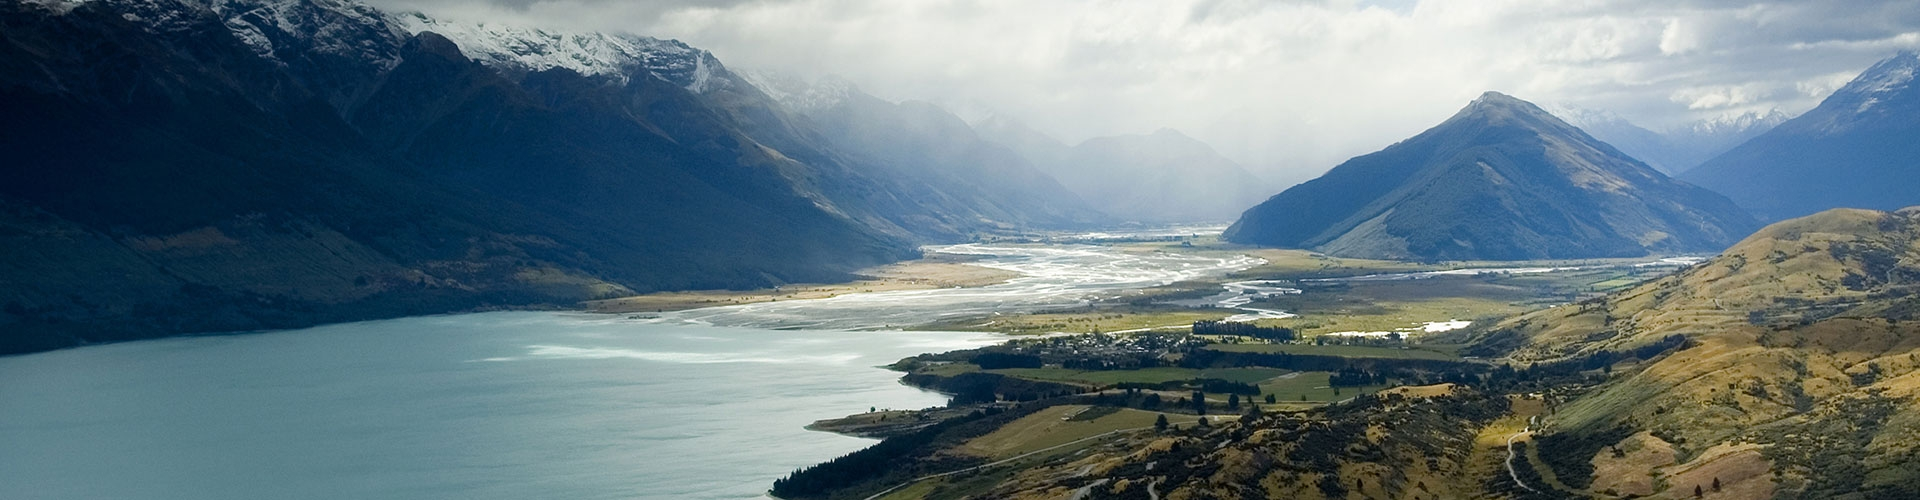 beautiful views of Glenorchy town